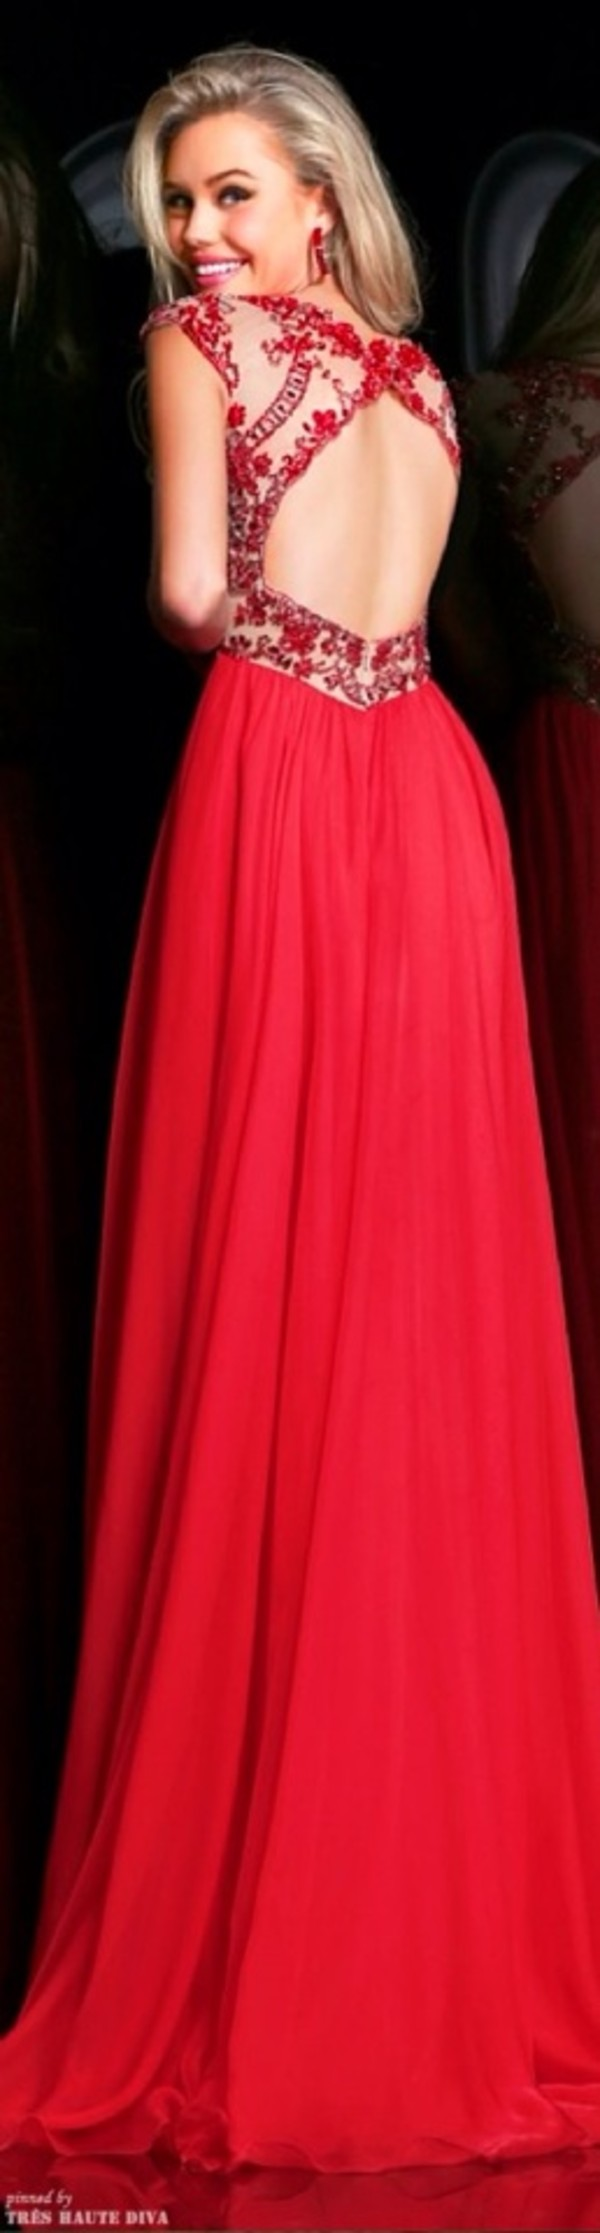 dress red prom dress evening dress long dress red dress red prom dress lace dress beading keyhole dress long red dress open back lace prom sherri hill red with lace back